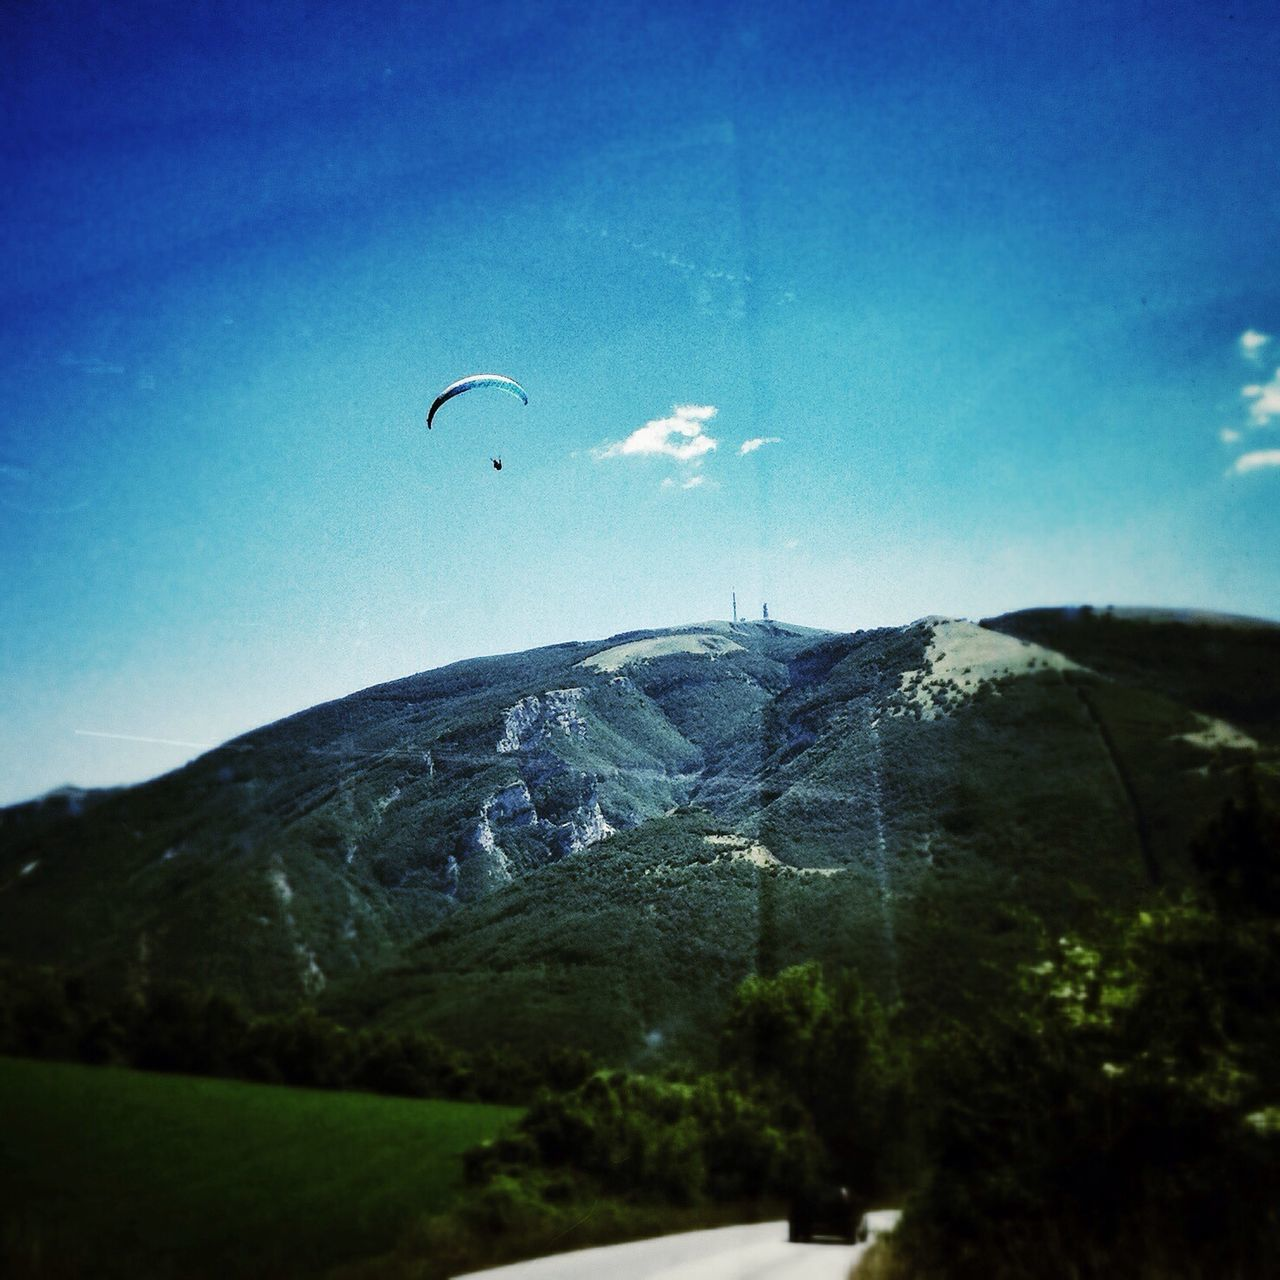 mountain, nature, tranquility, sky, outdoors, tranquil scene, day, beauty in nature, blue, scenics, landscape, no people, adventure, flying, tree, paragliding